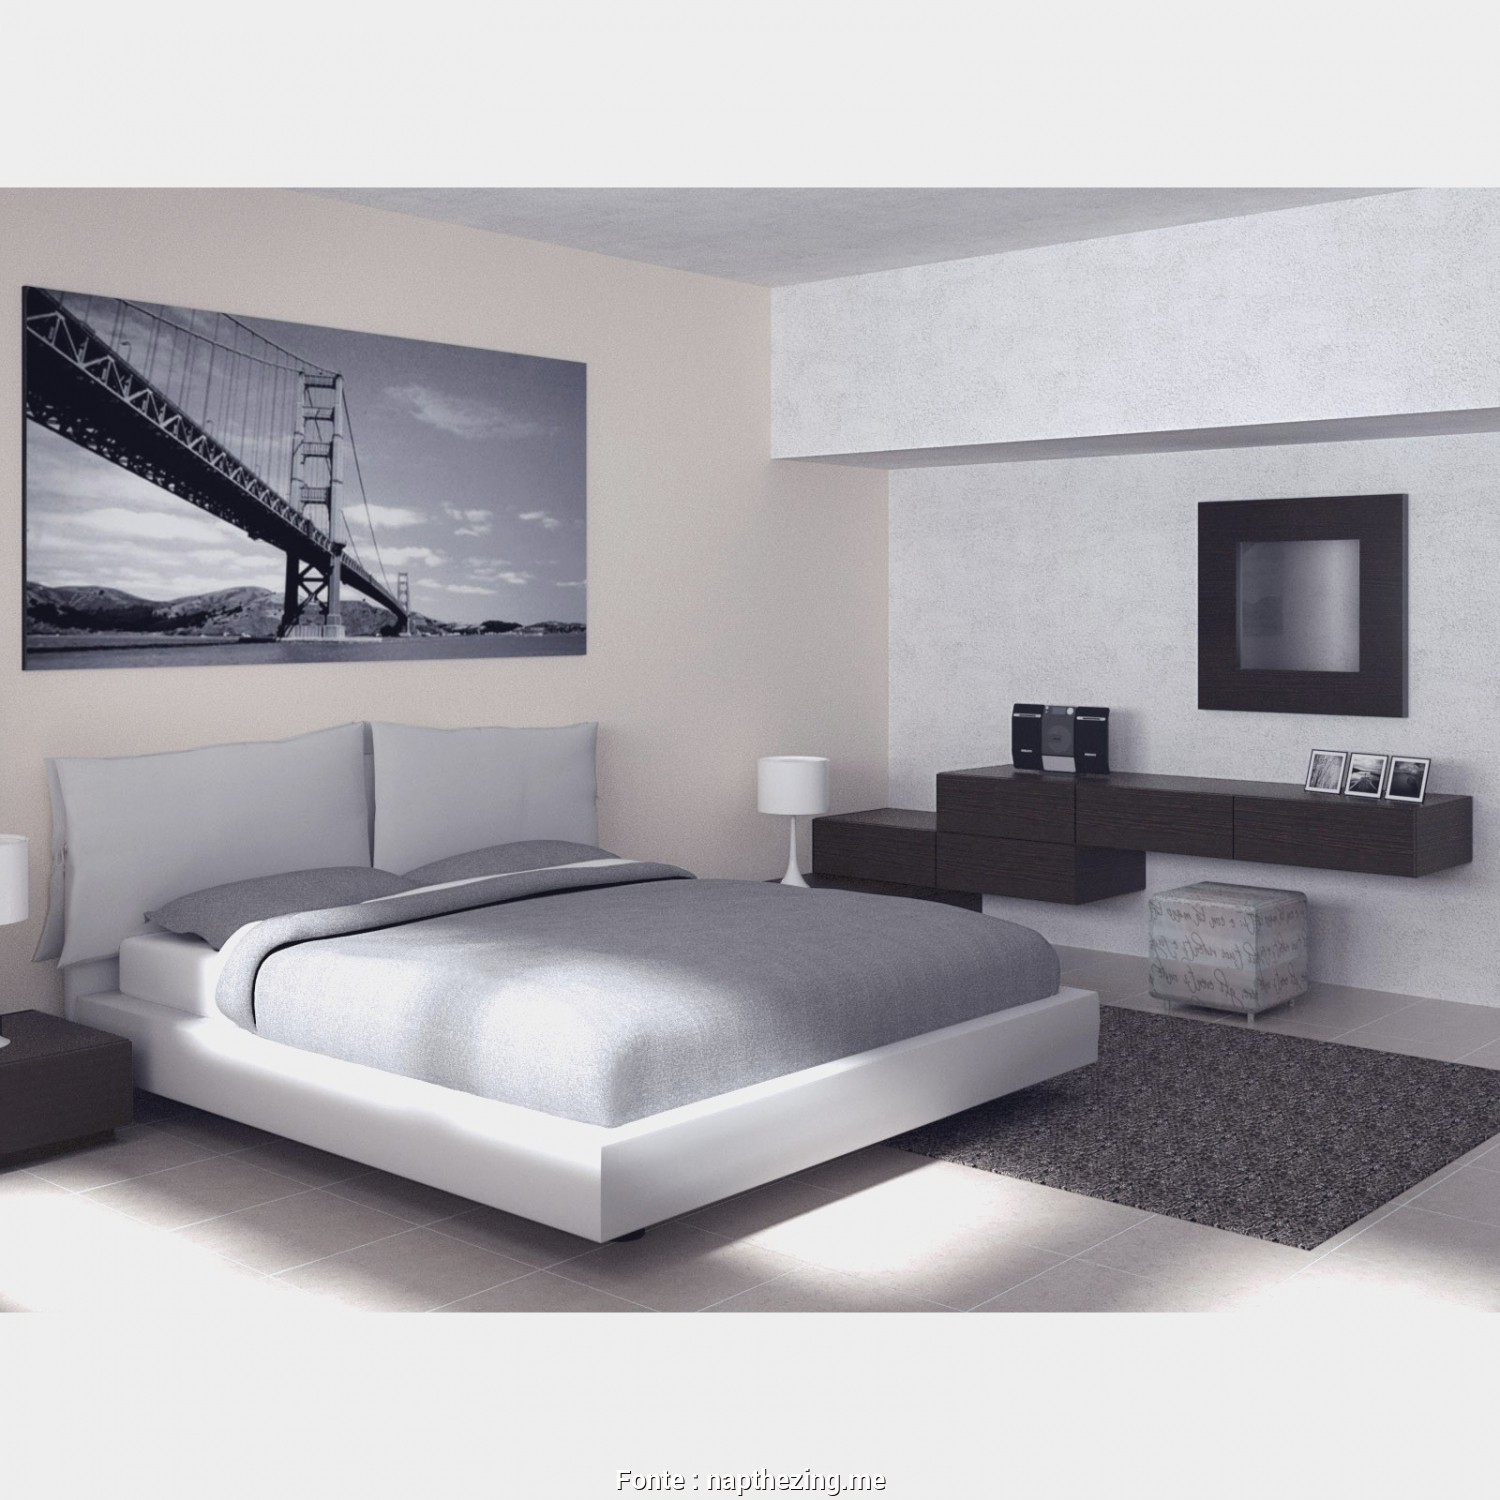 Divano, Tv Dwg, Bello Full Size Of Camera Da Letto, Camera Da Letto, Tv Habitaciones Decoradas, Colores